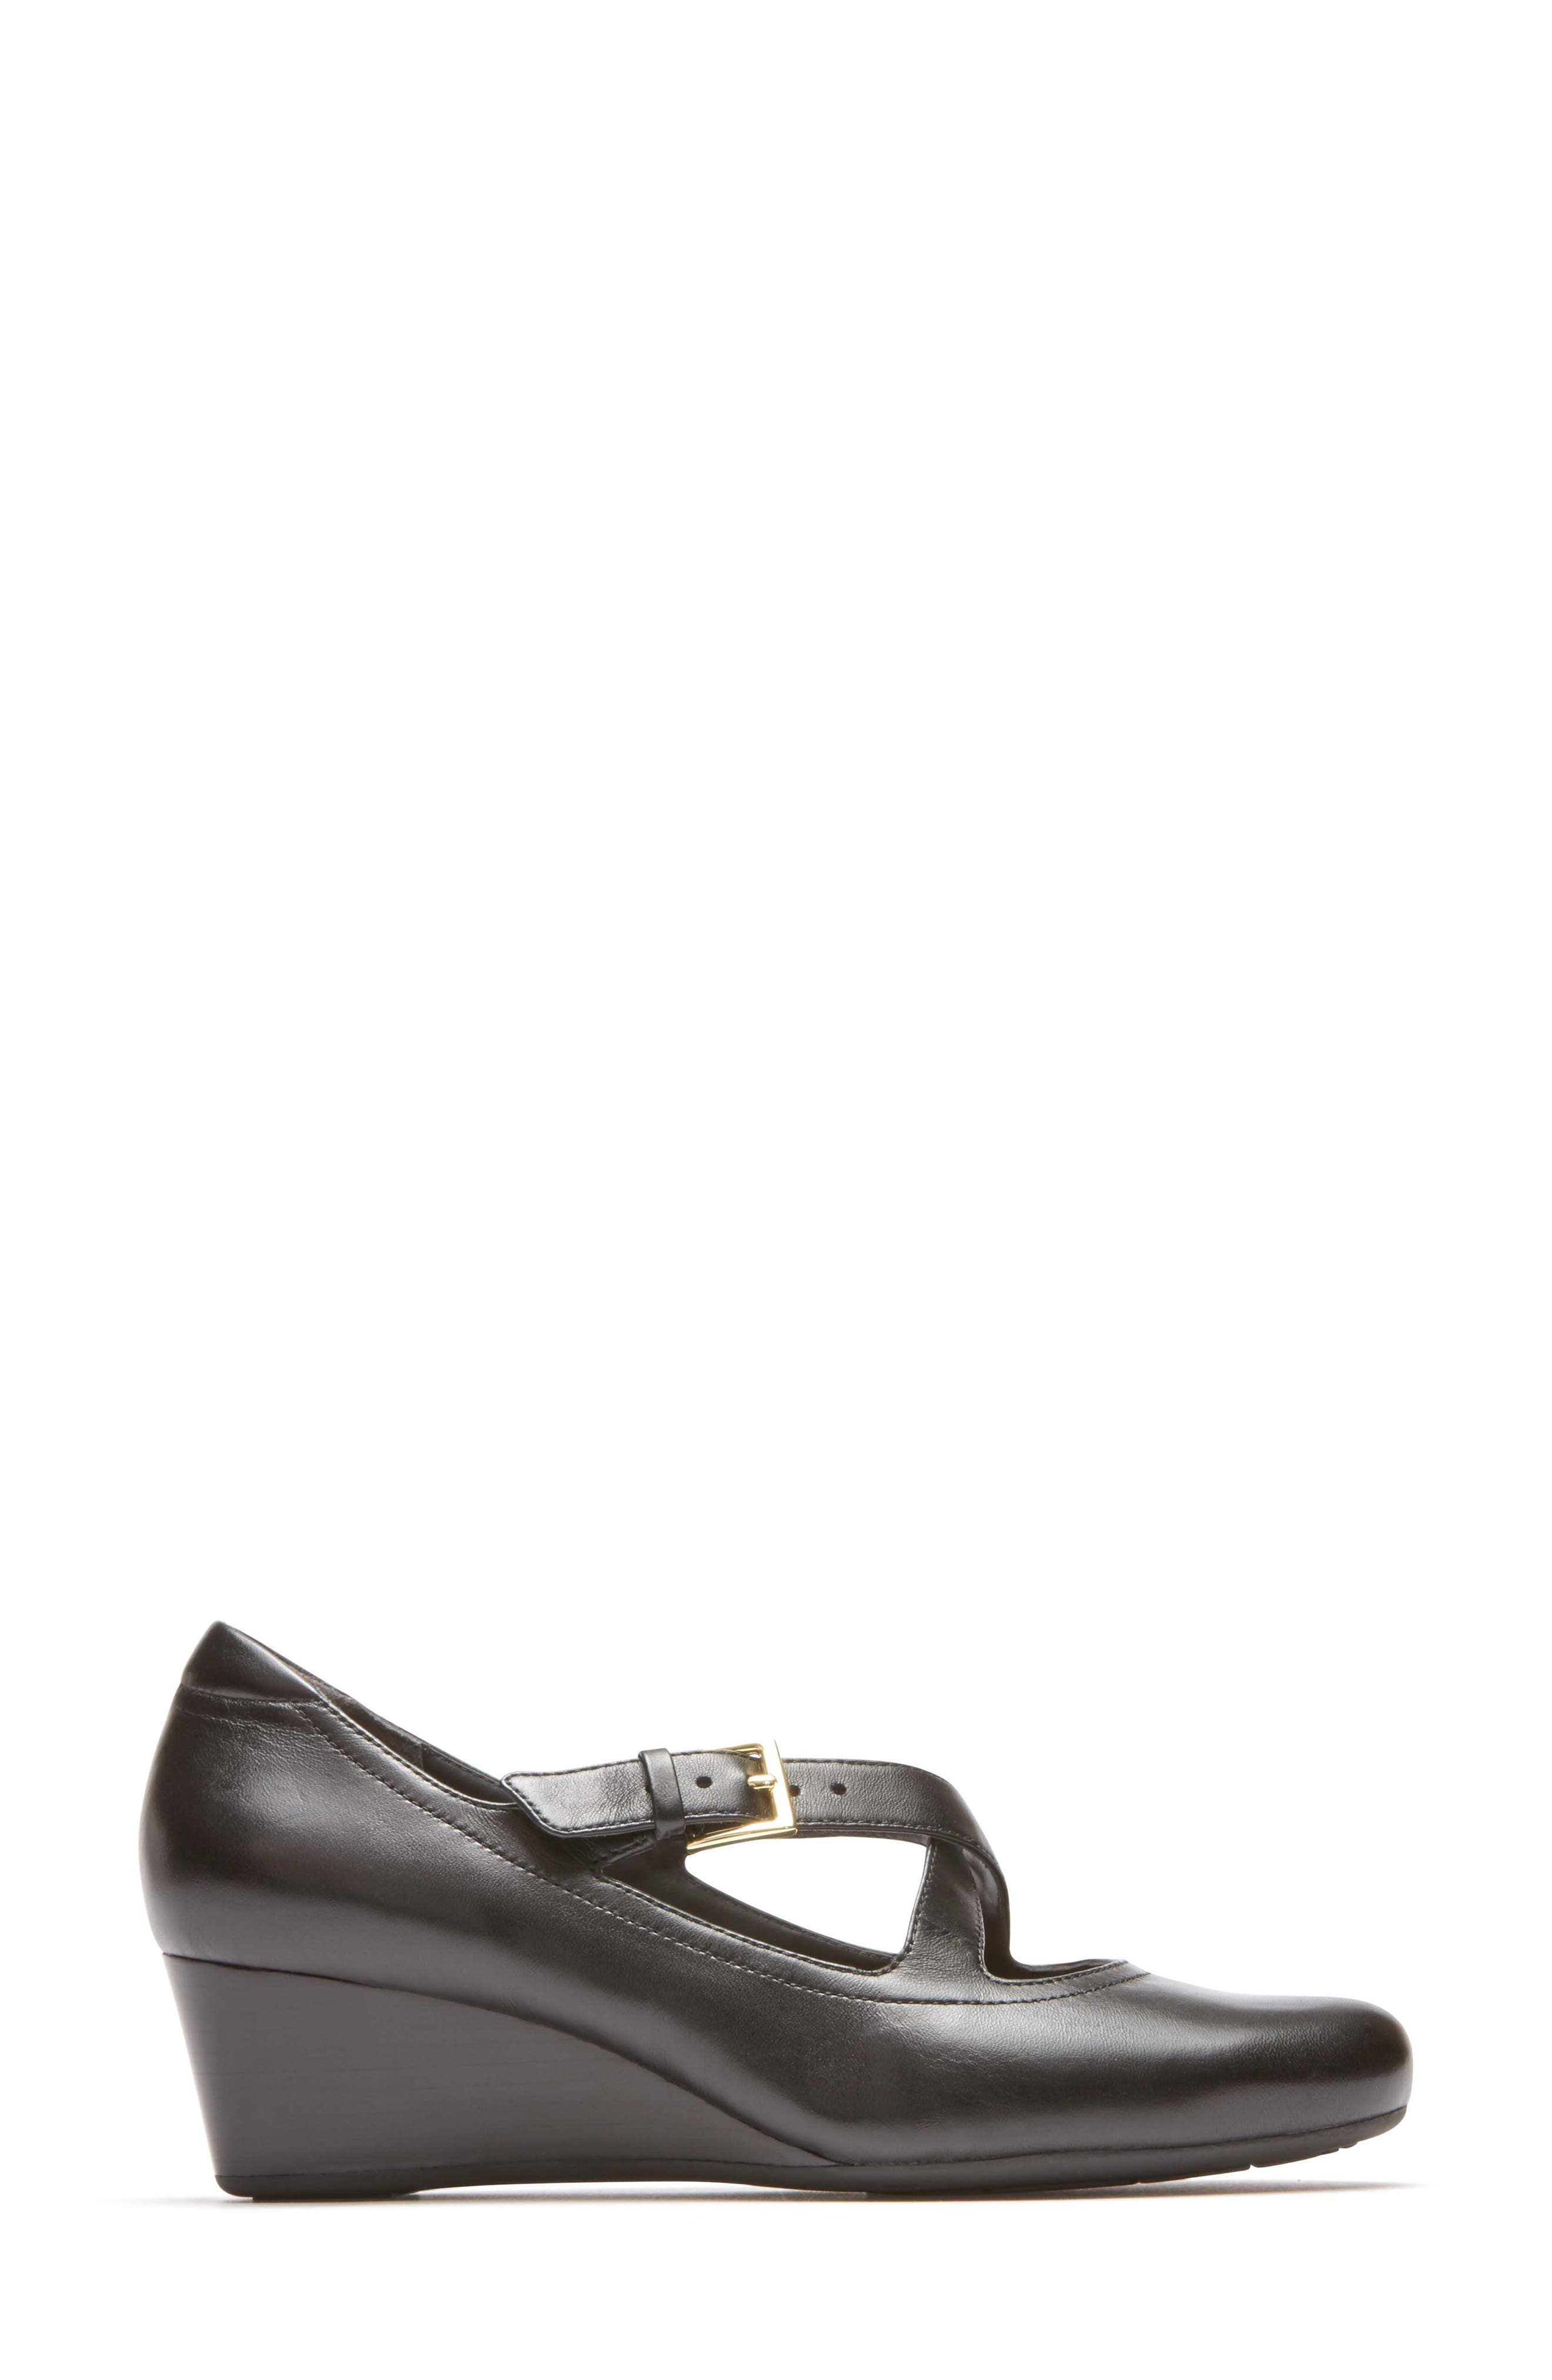 Total Motion Luxe Two-Strap Wedge,                             Alternate thumbnail 3, color,                             Black Leather